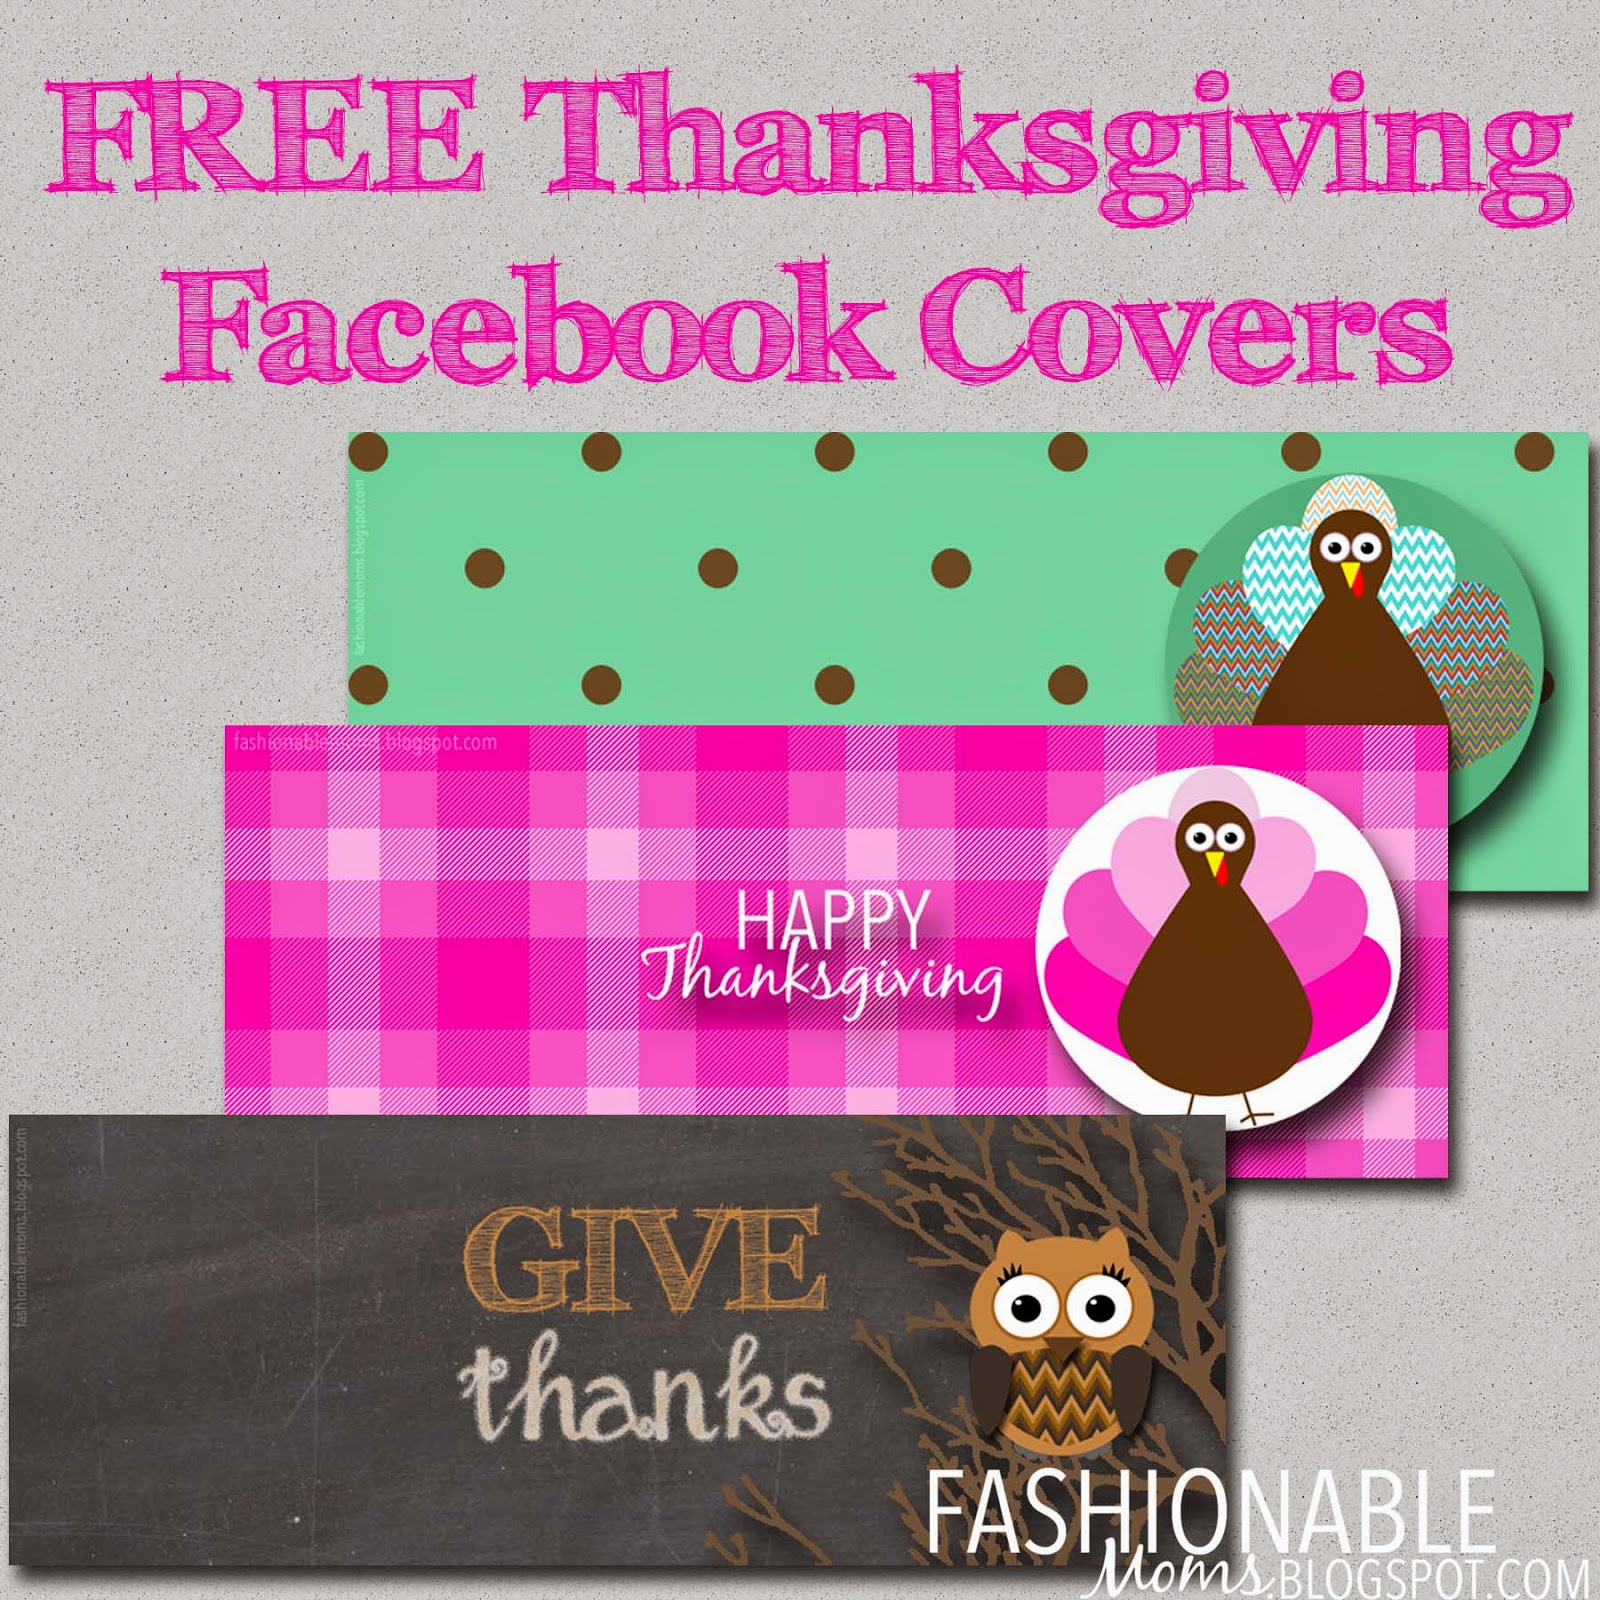 My Fashionable Designs Free Thanksgiving Facebook Covers